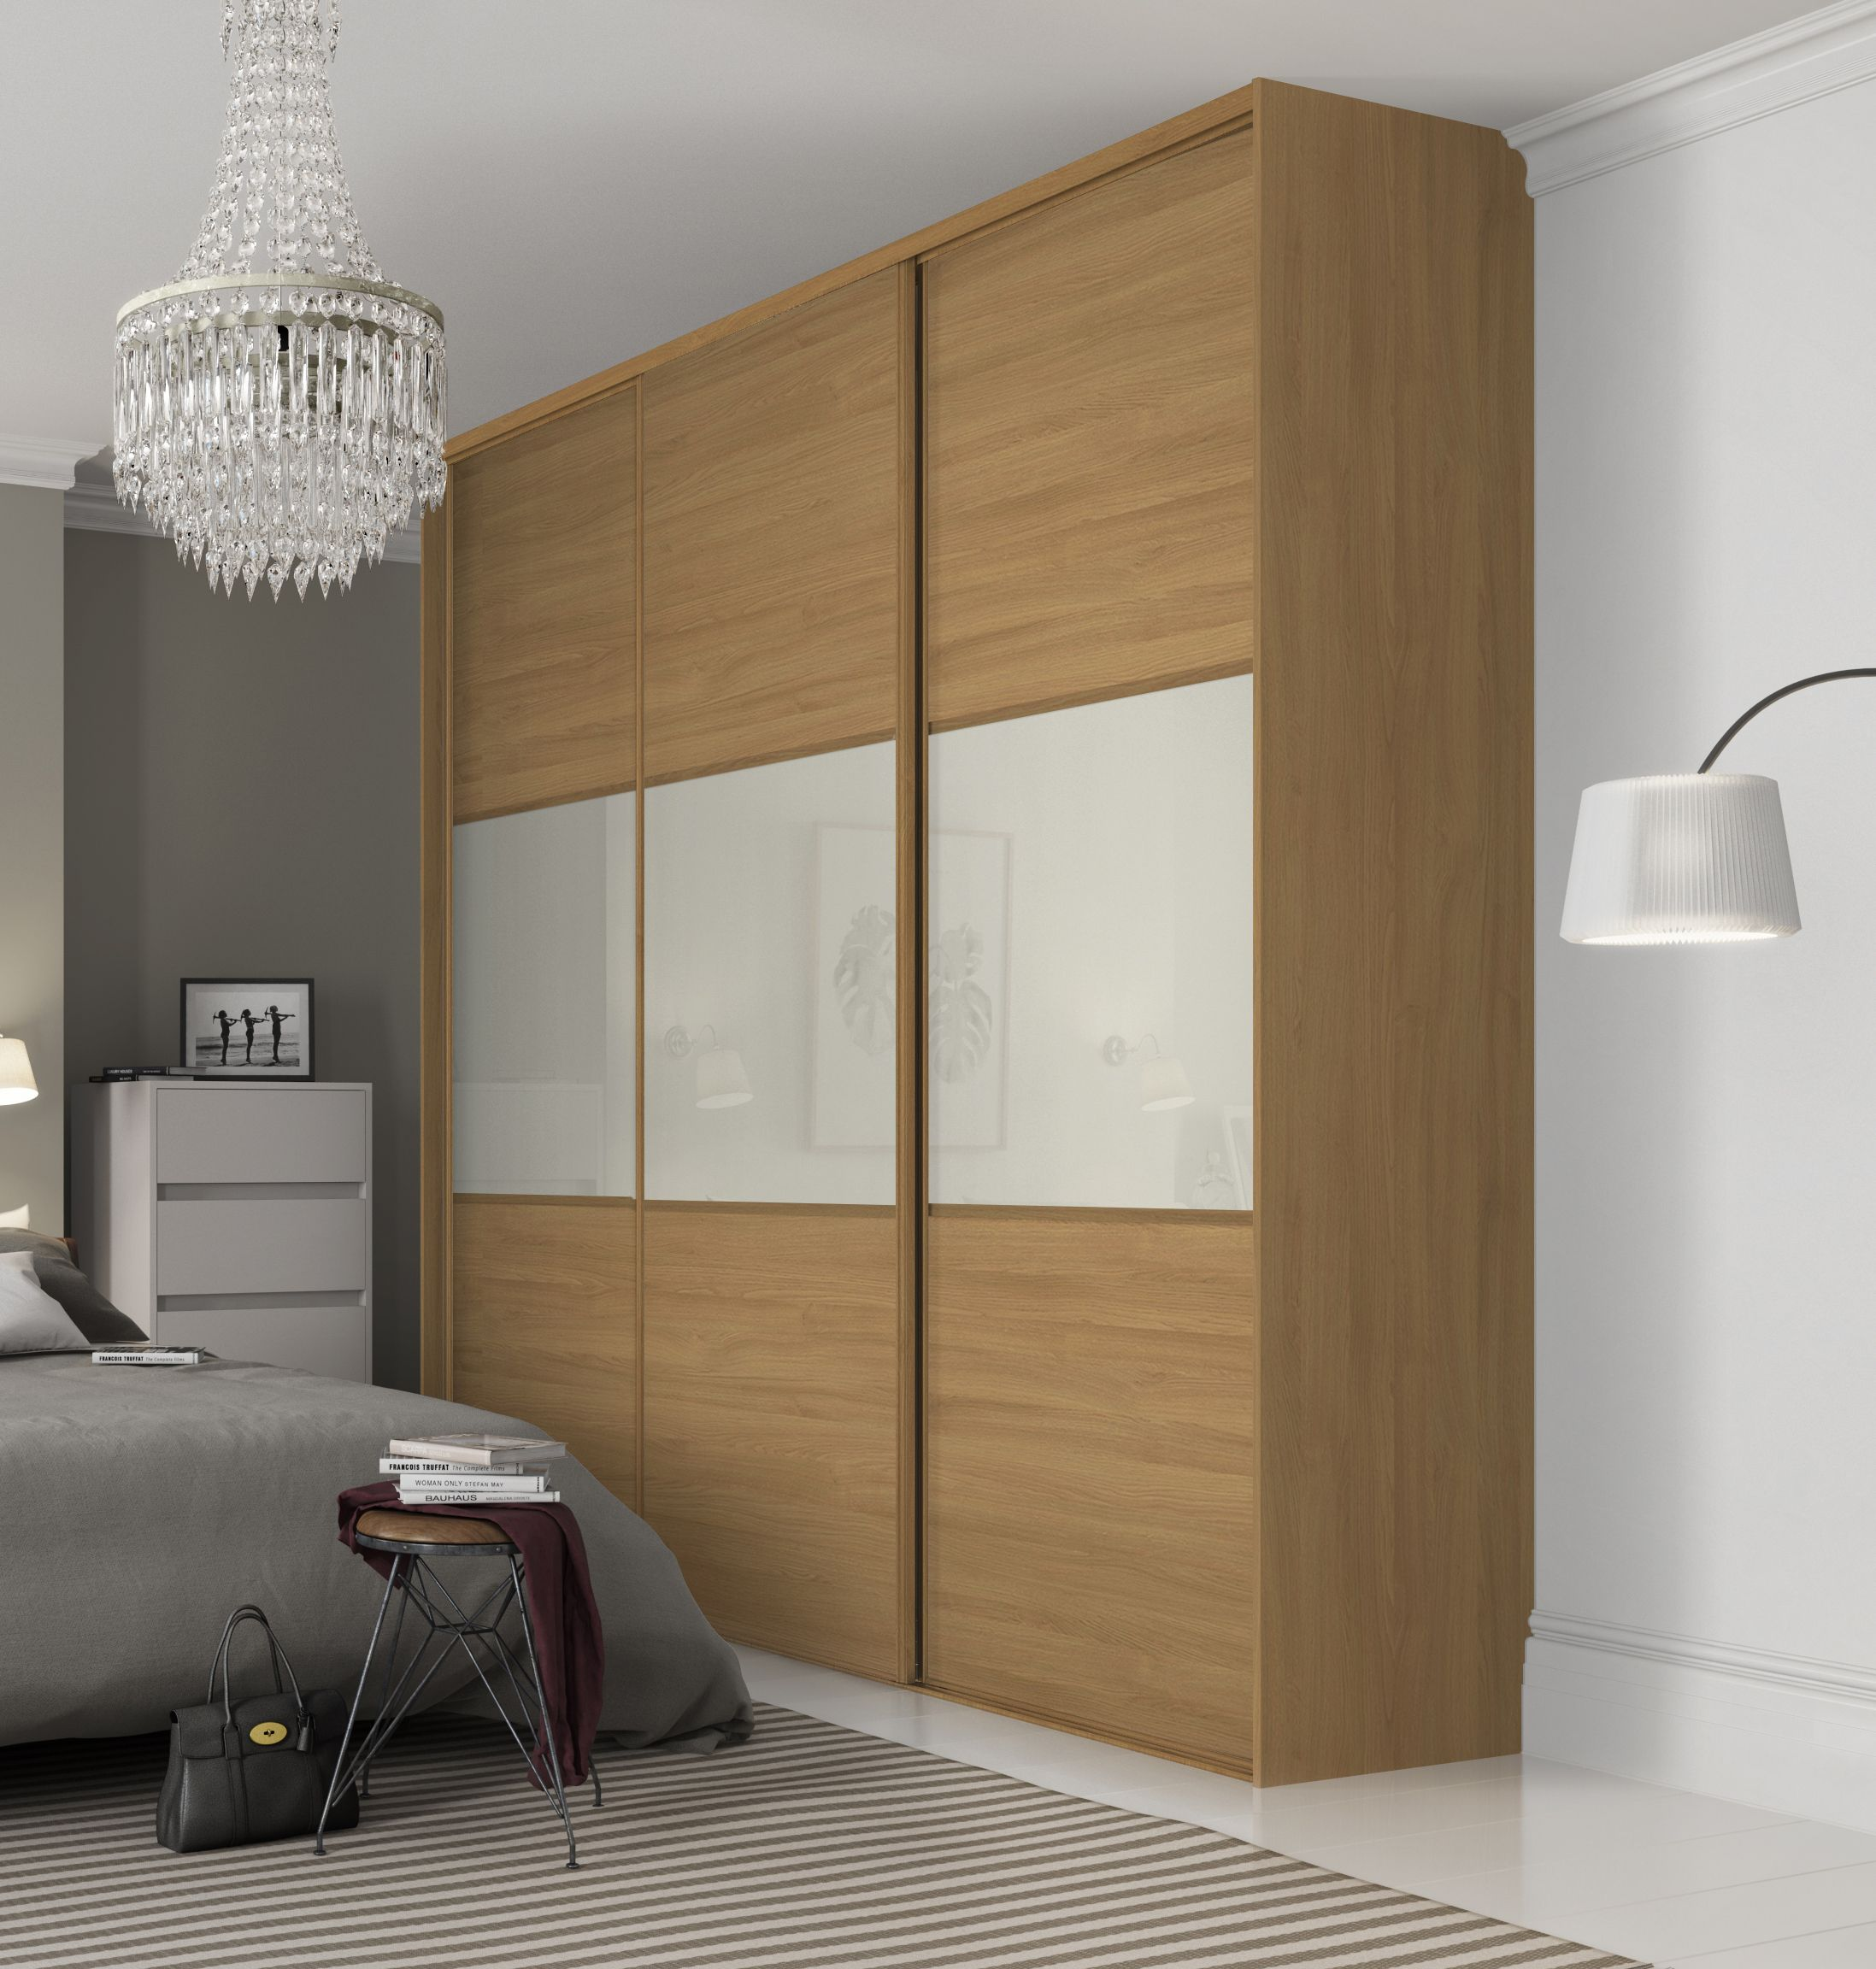 New Beautiful classic three panel sliding wardrobe doors in Oak and Soft White finish with Oak